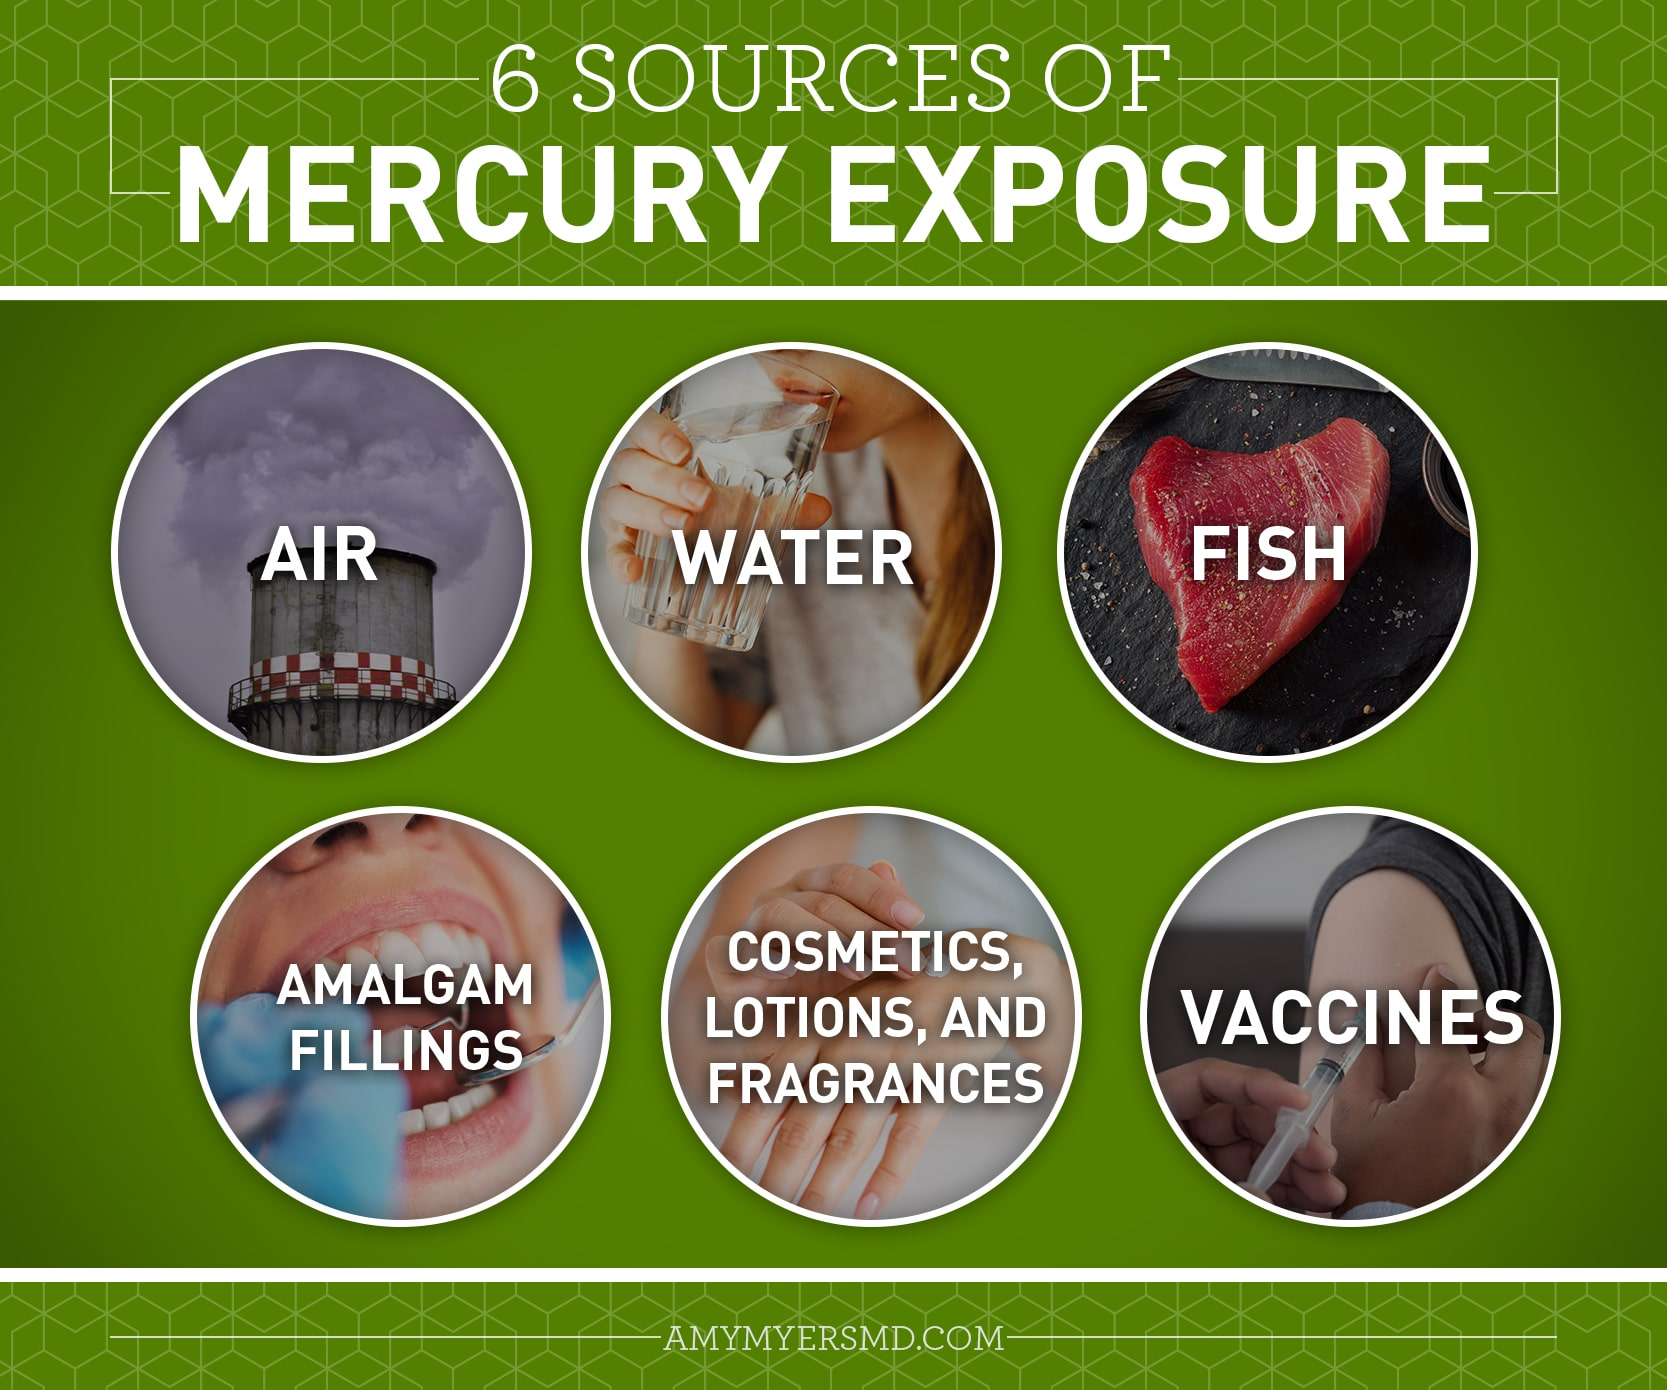 6 Sources of Mercury Exposure - Infographic - Amy Myers MD